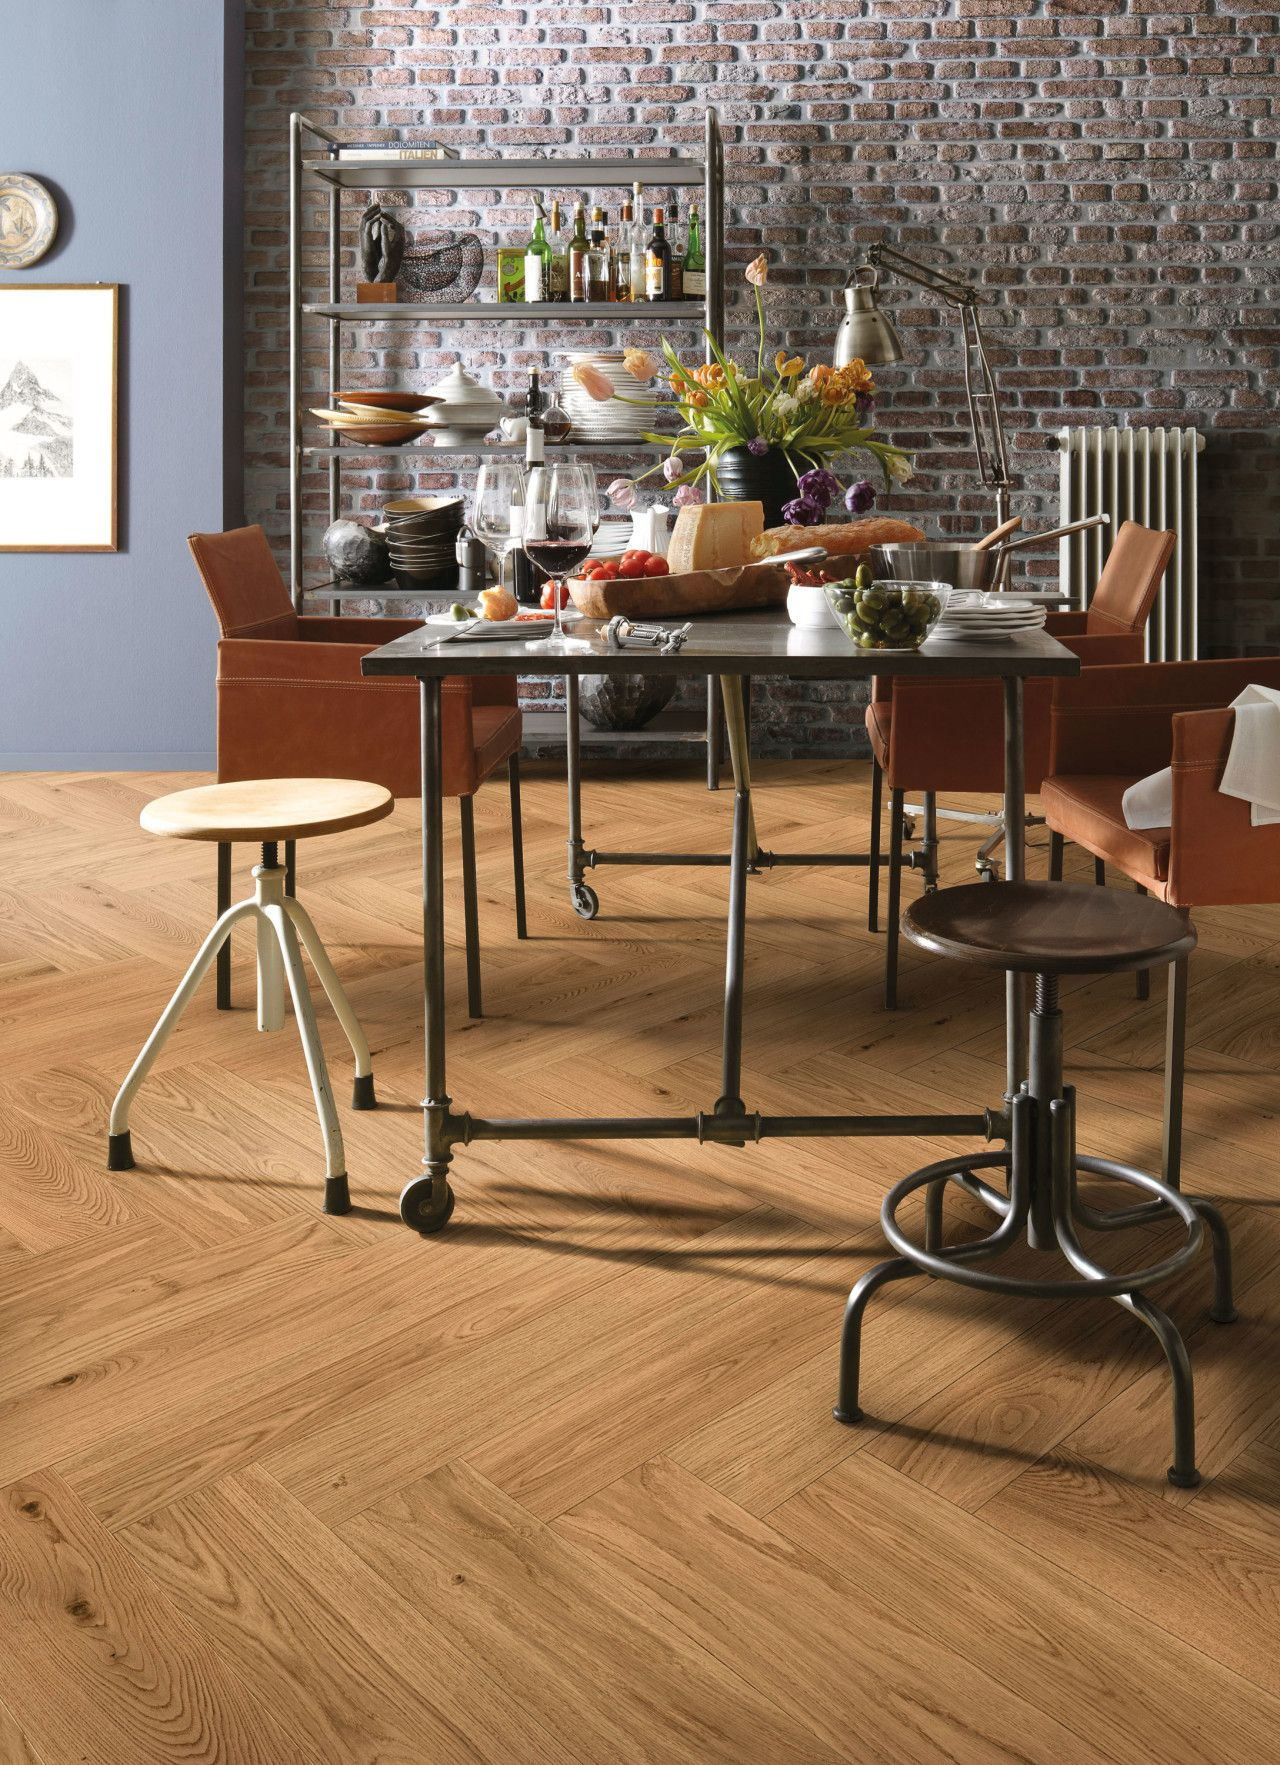 Our Finewood flooring option is durable, resilient and